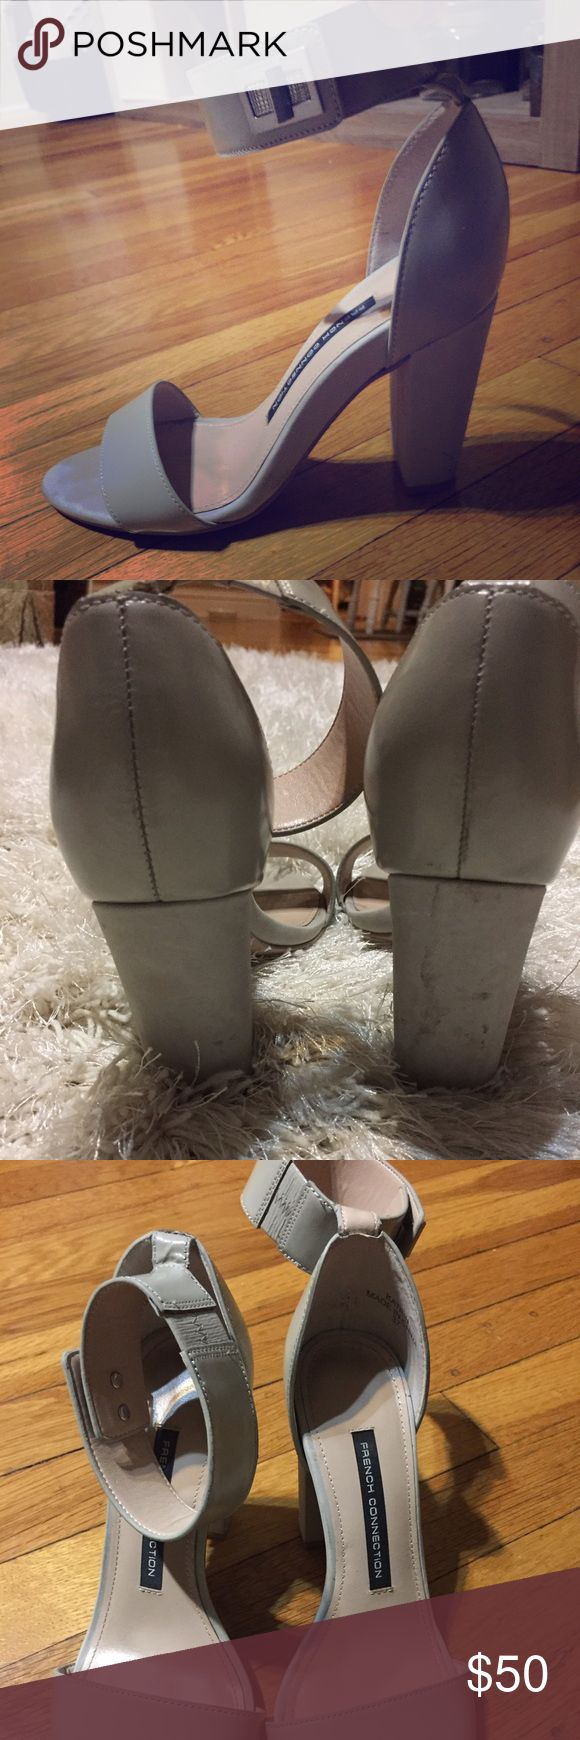 French connection grey strappy heels size 7 Tall grey strappy heeled sandal with leather upper and synthetic lining and synthetic sole size 7 or 37 French Connection Shoes Heels